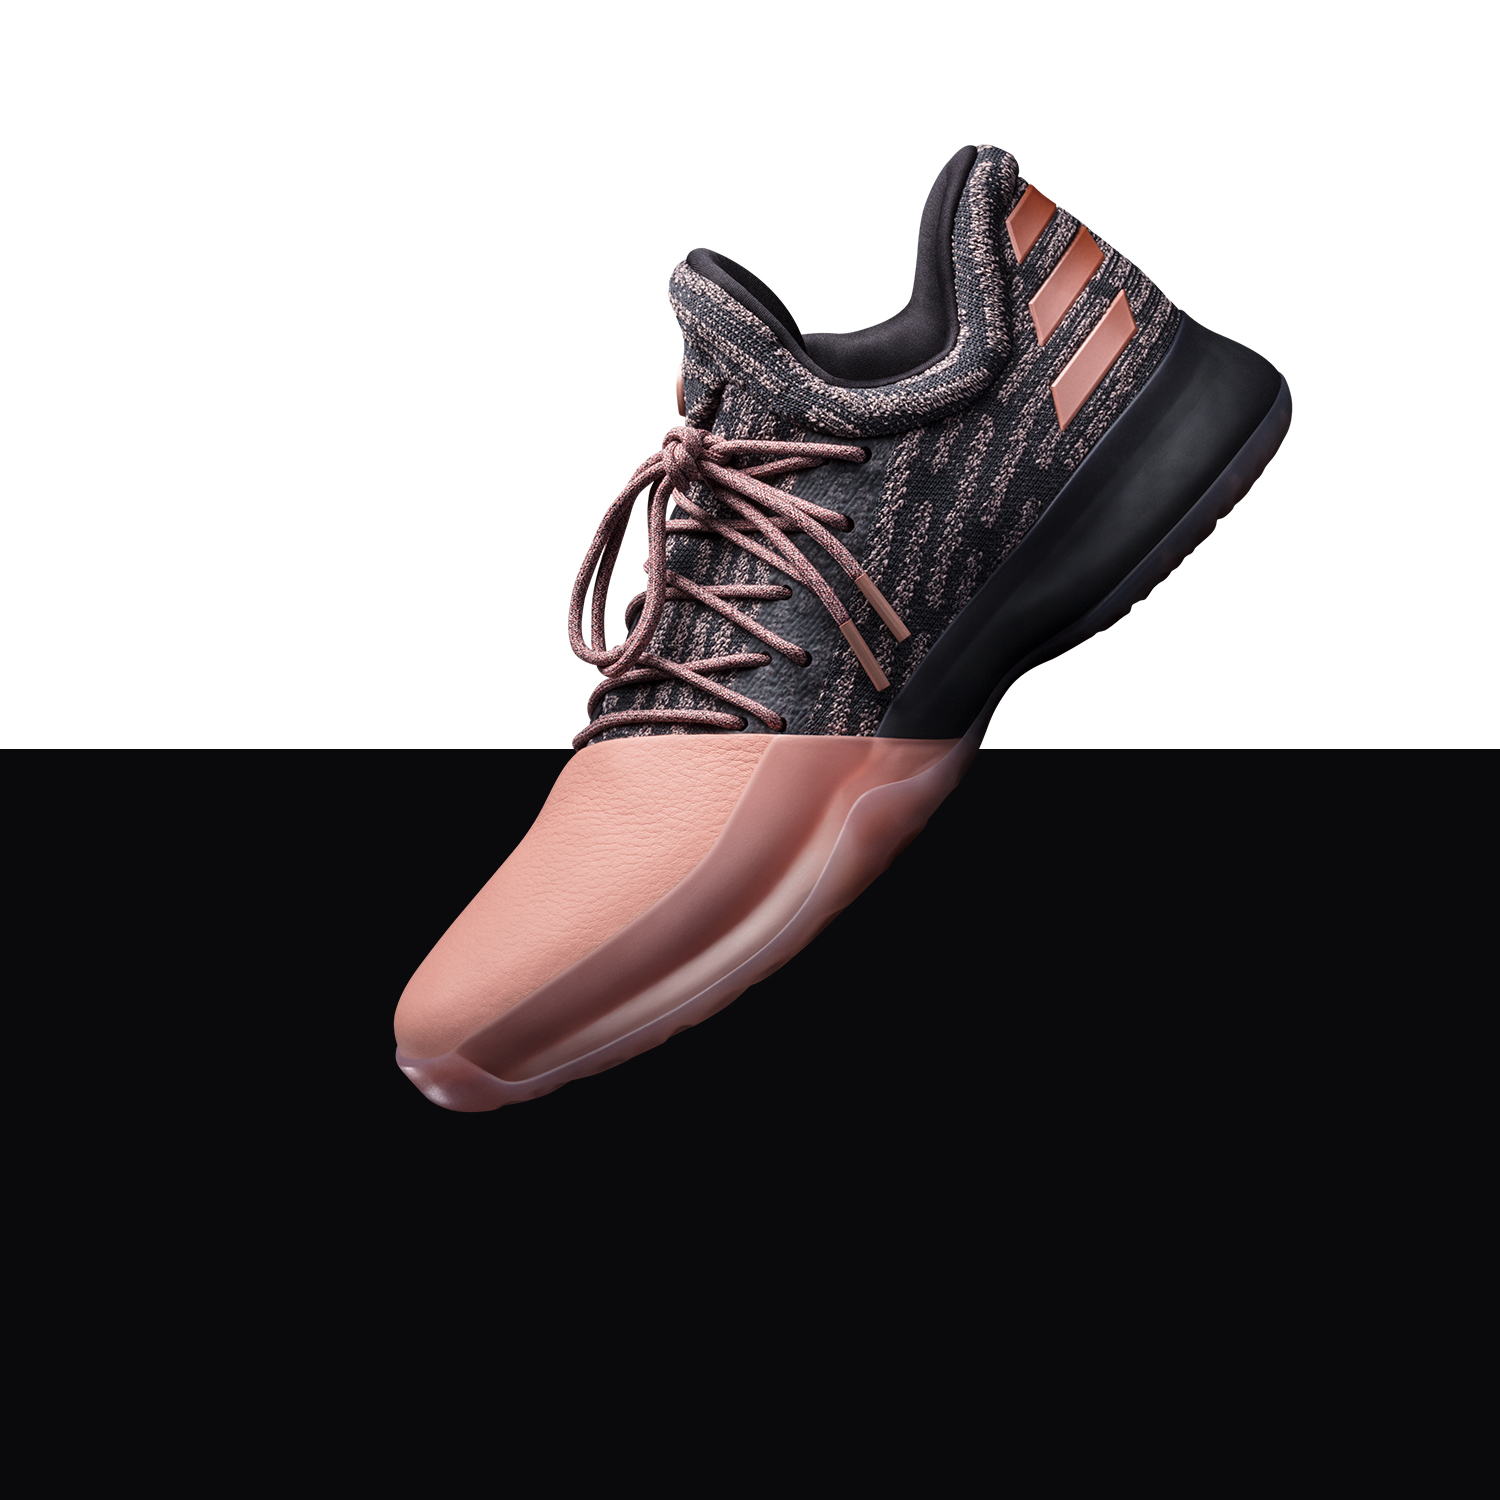 adidas harden vol. 1 gila monster 2